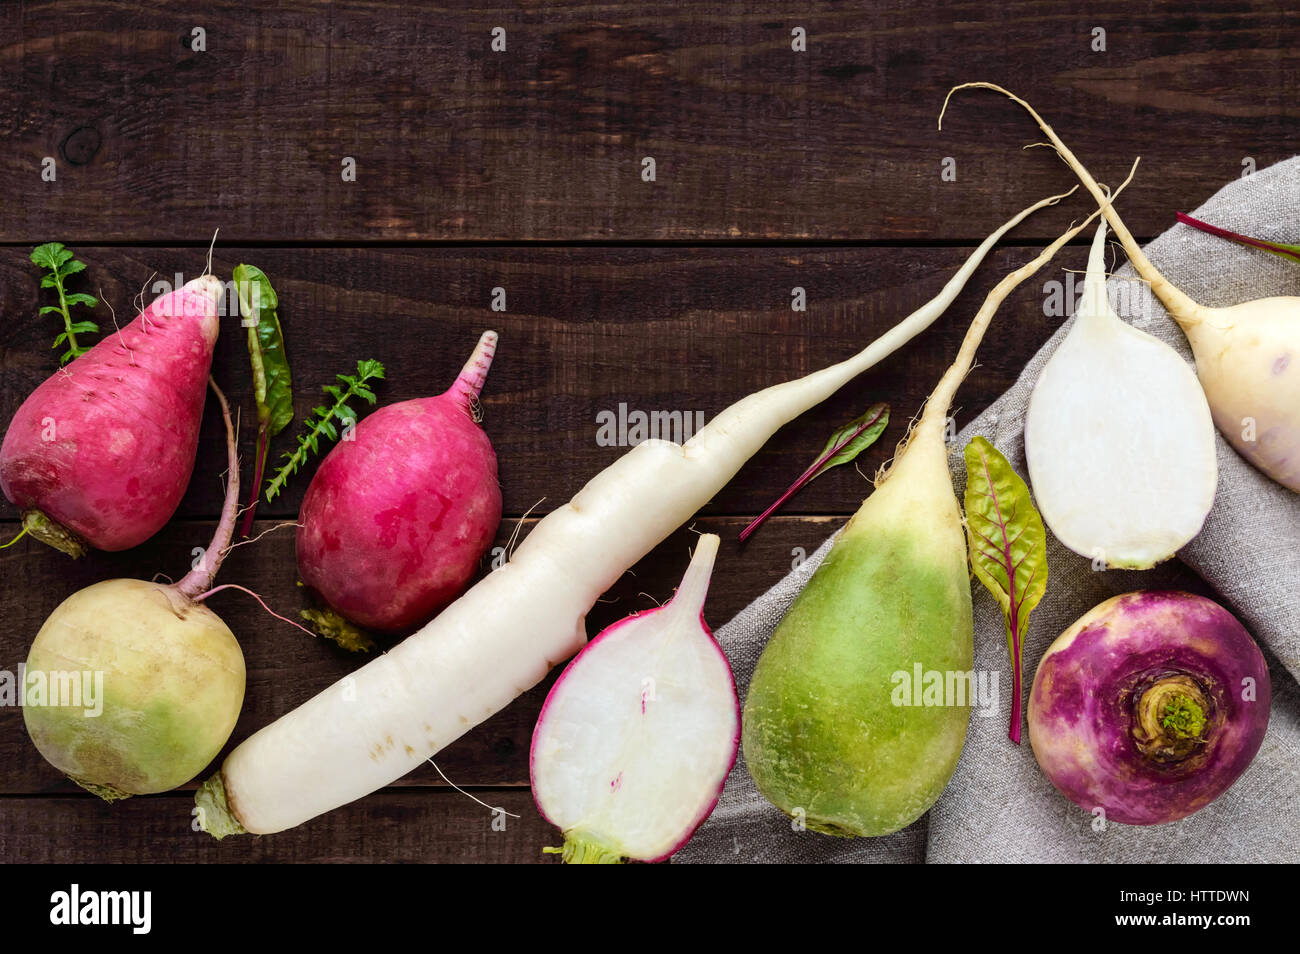 What is useful for radish